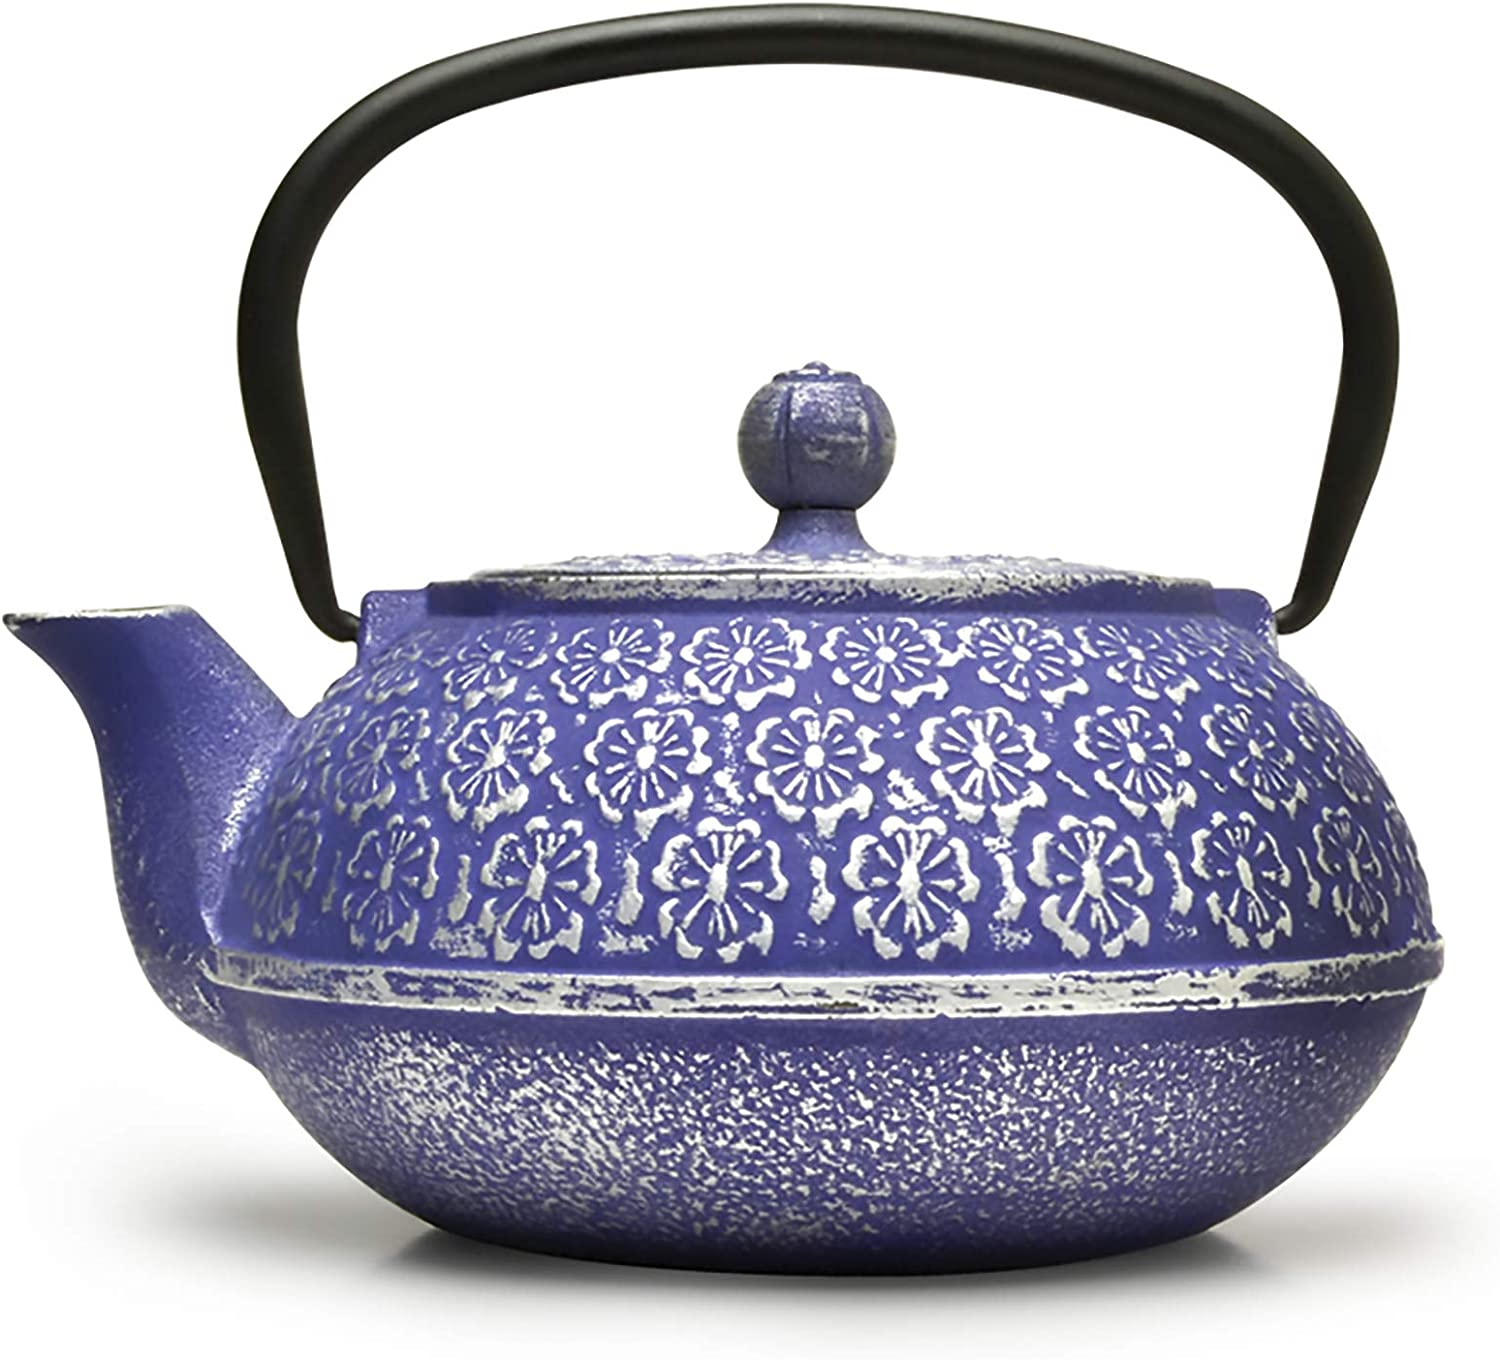 Primula Blue Branded goods Floral Cast Iron Teapot Japanese Max 78% OFF Tetsubin Stainless